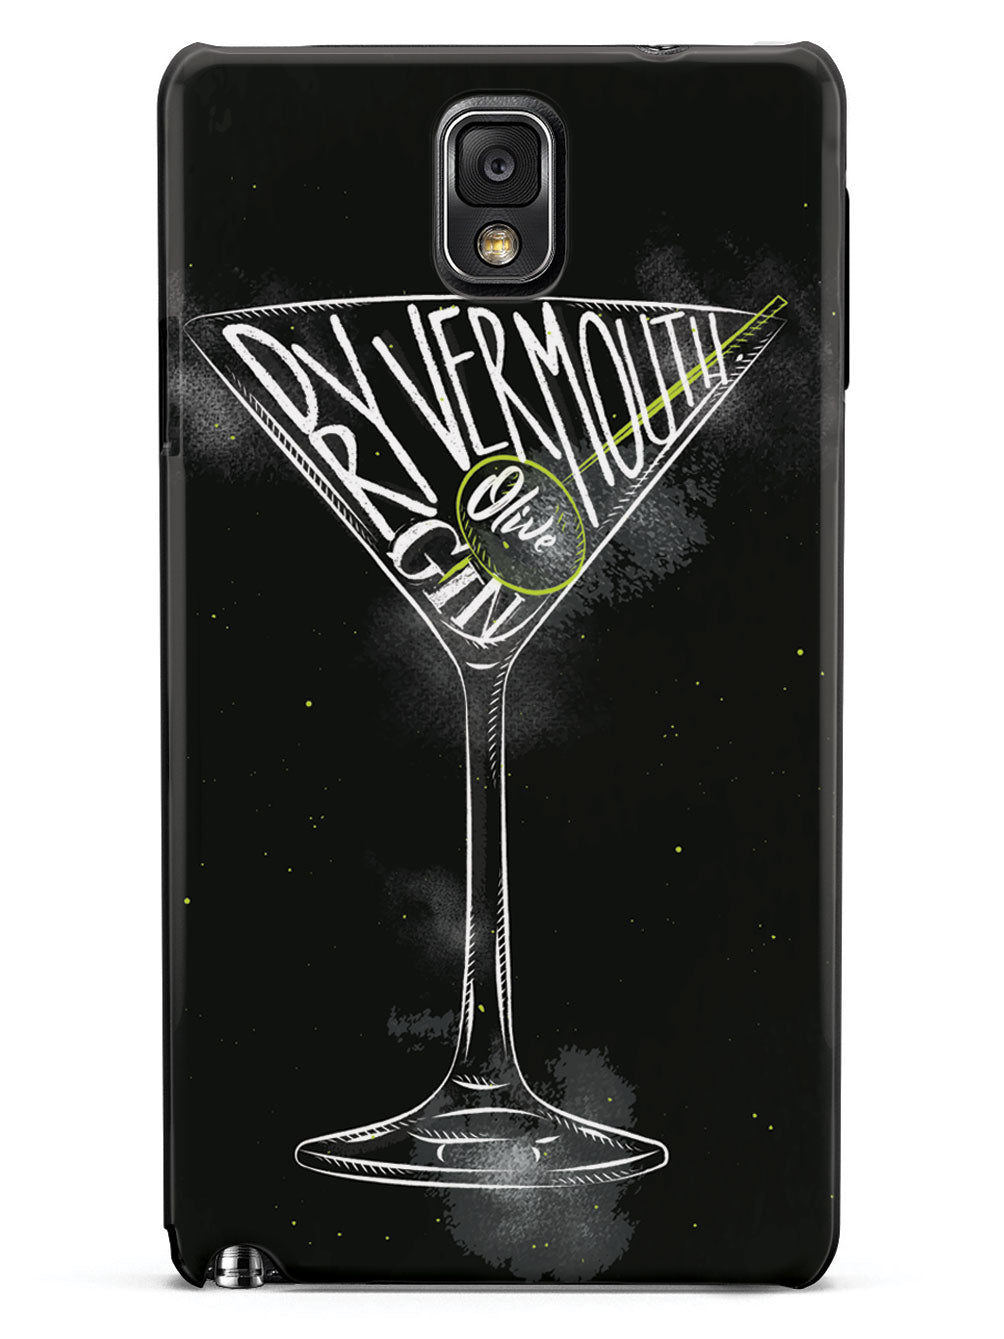 Martini Sketch - Black Case